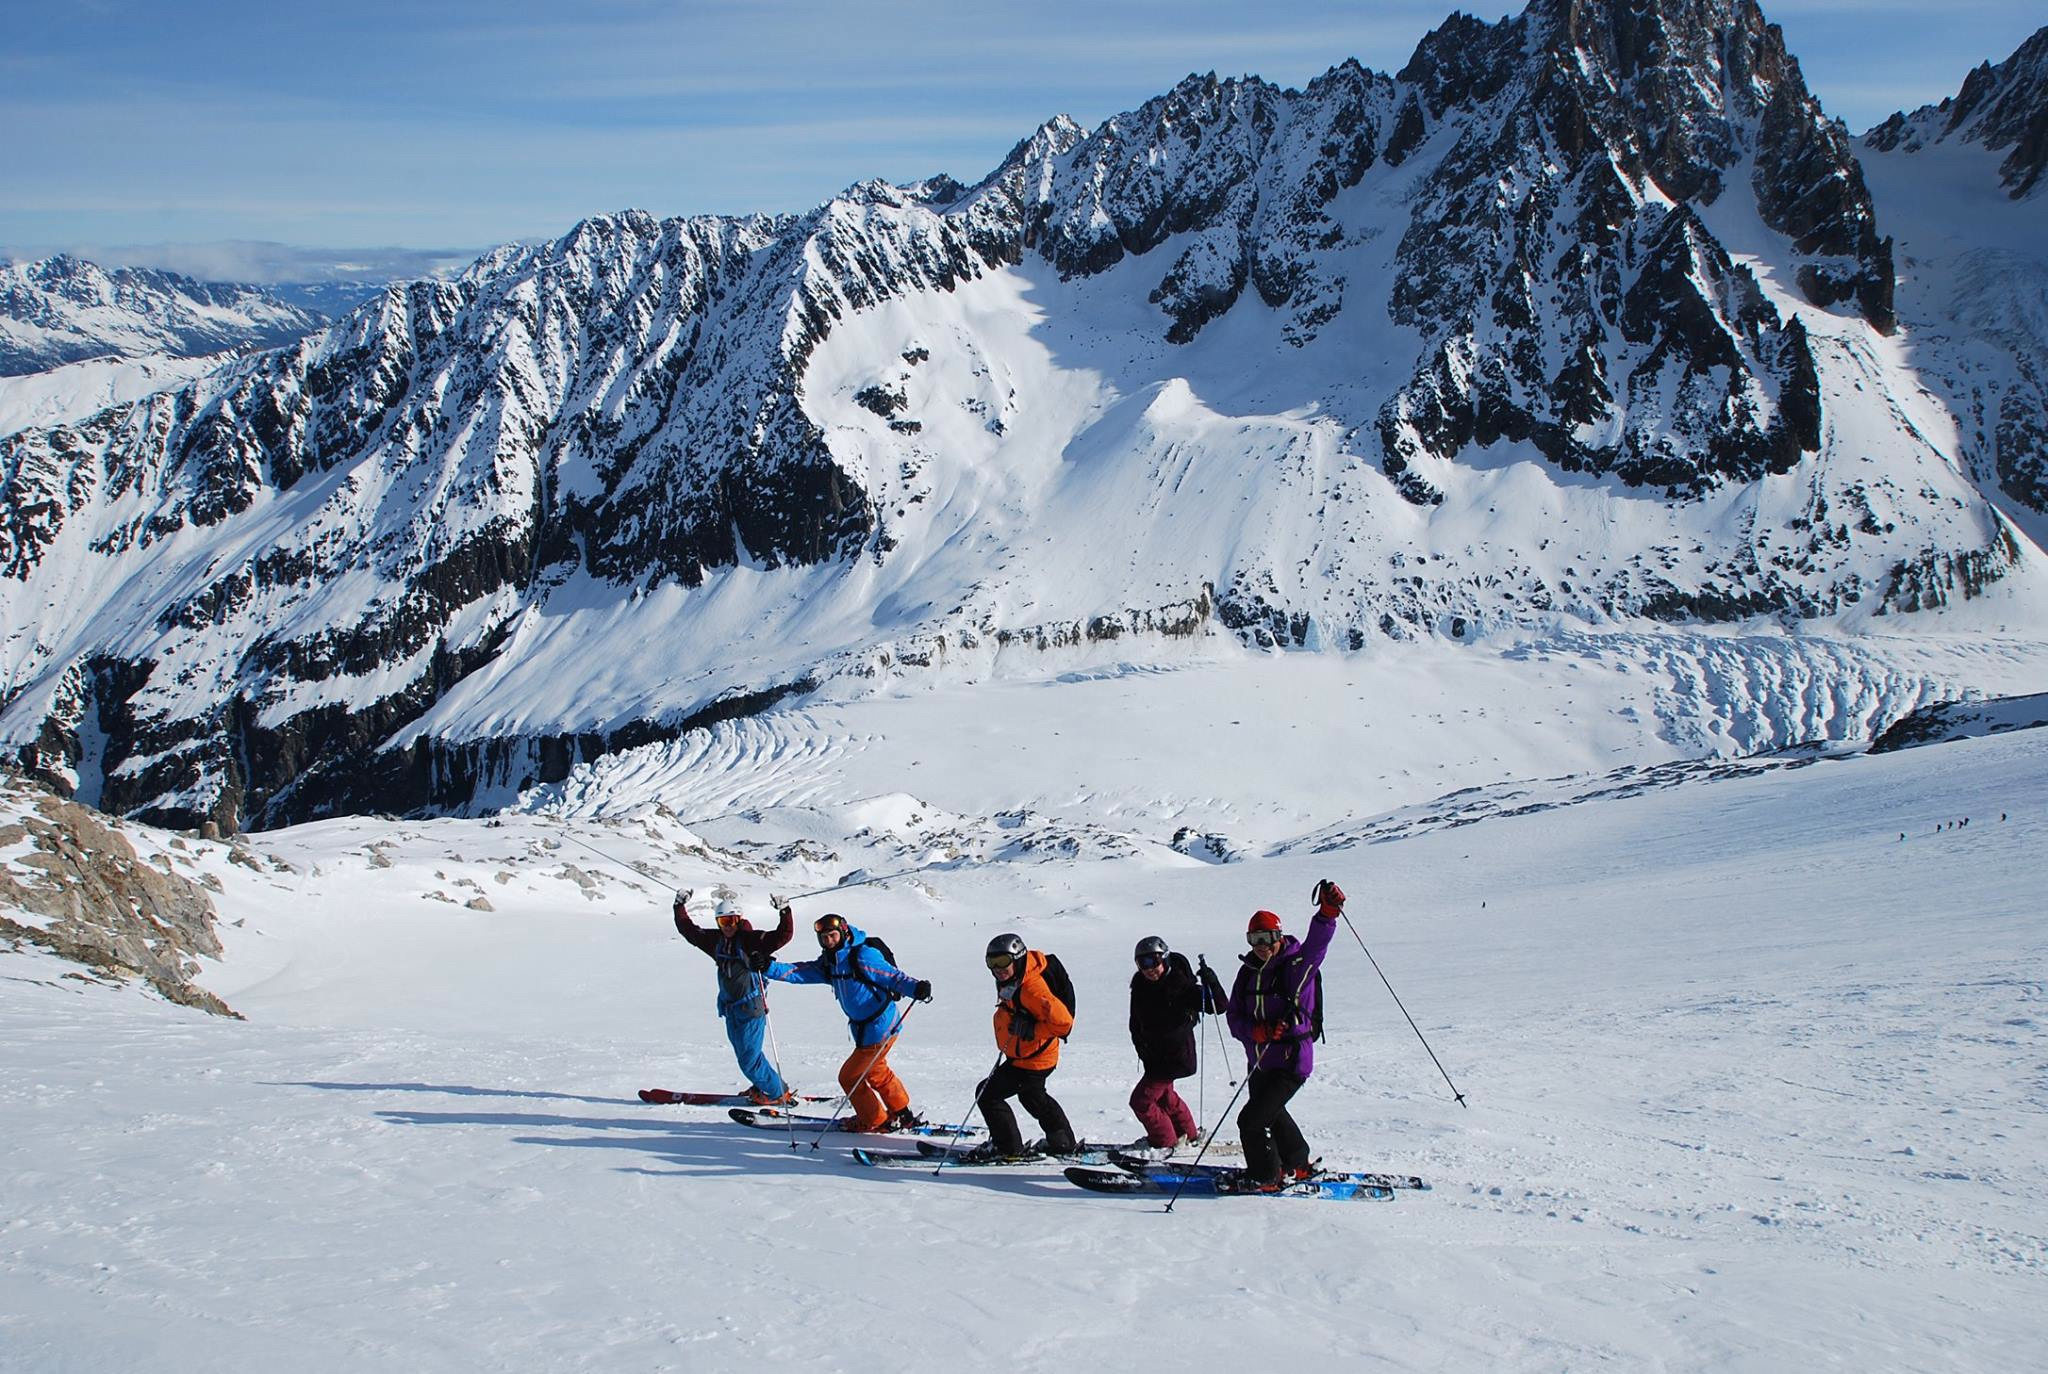 Performance ski courses & lessons in Europe | All Mountain Performance